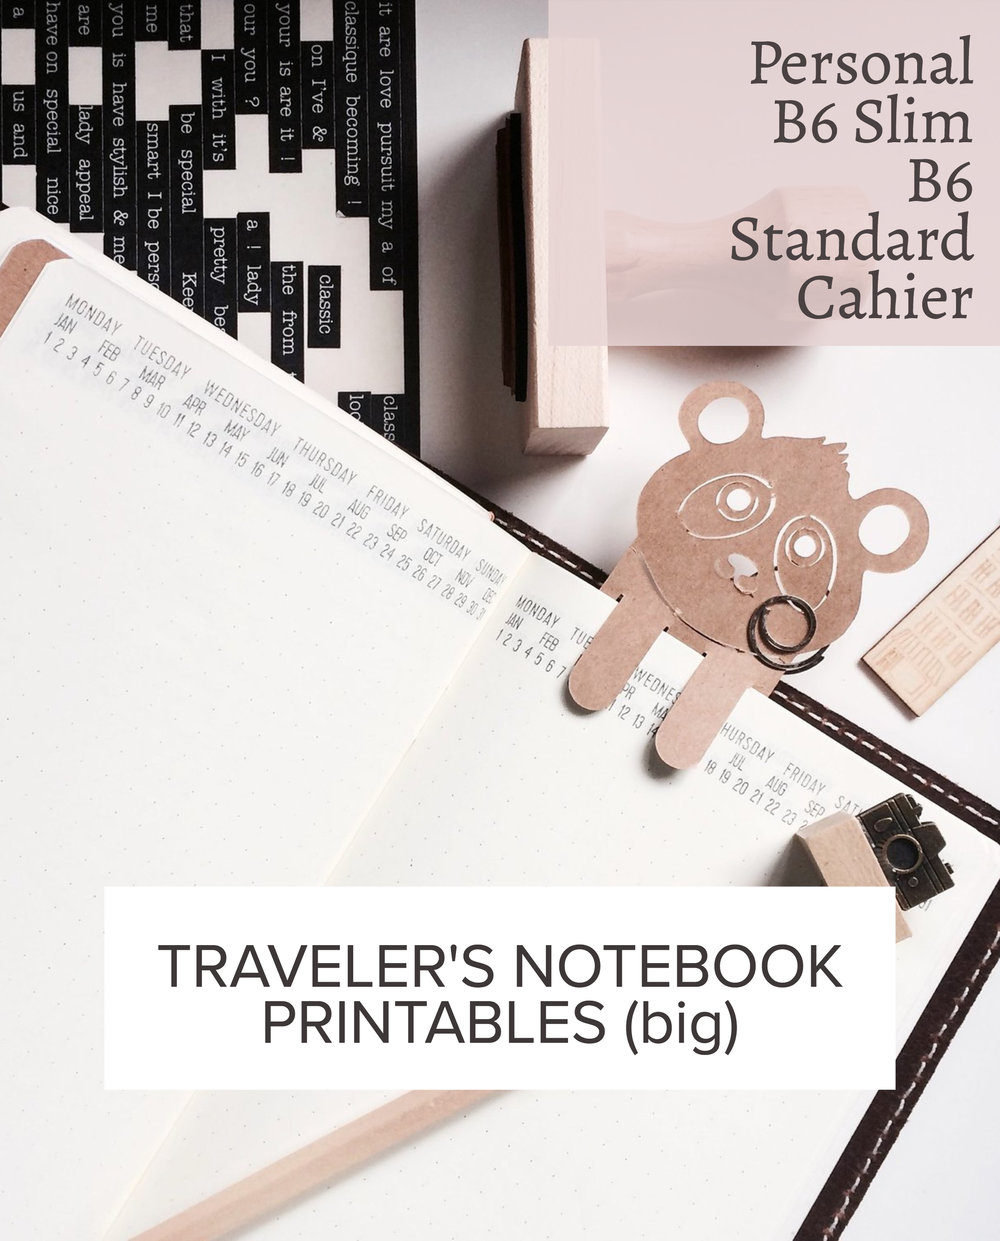 PRINTABLE TRAVELER'S NOTEBOOK INSERTS (BIG)